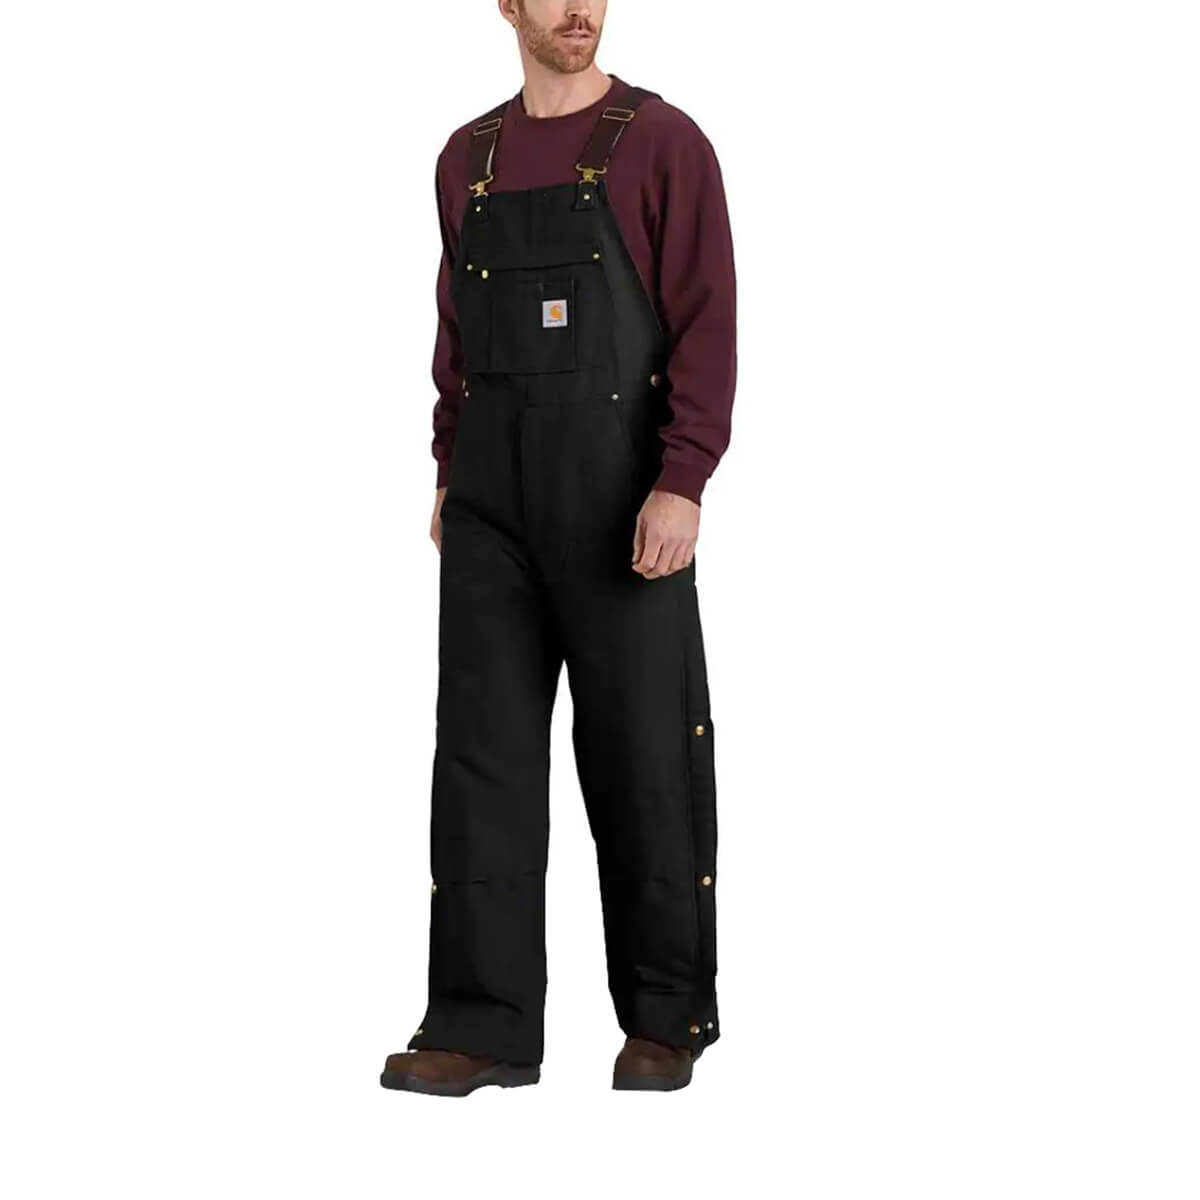 Carhartt Loose Fit Firm Duck Insulated Bib Overall - Black